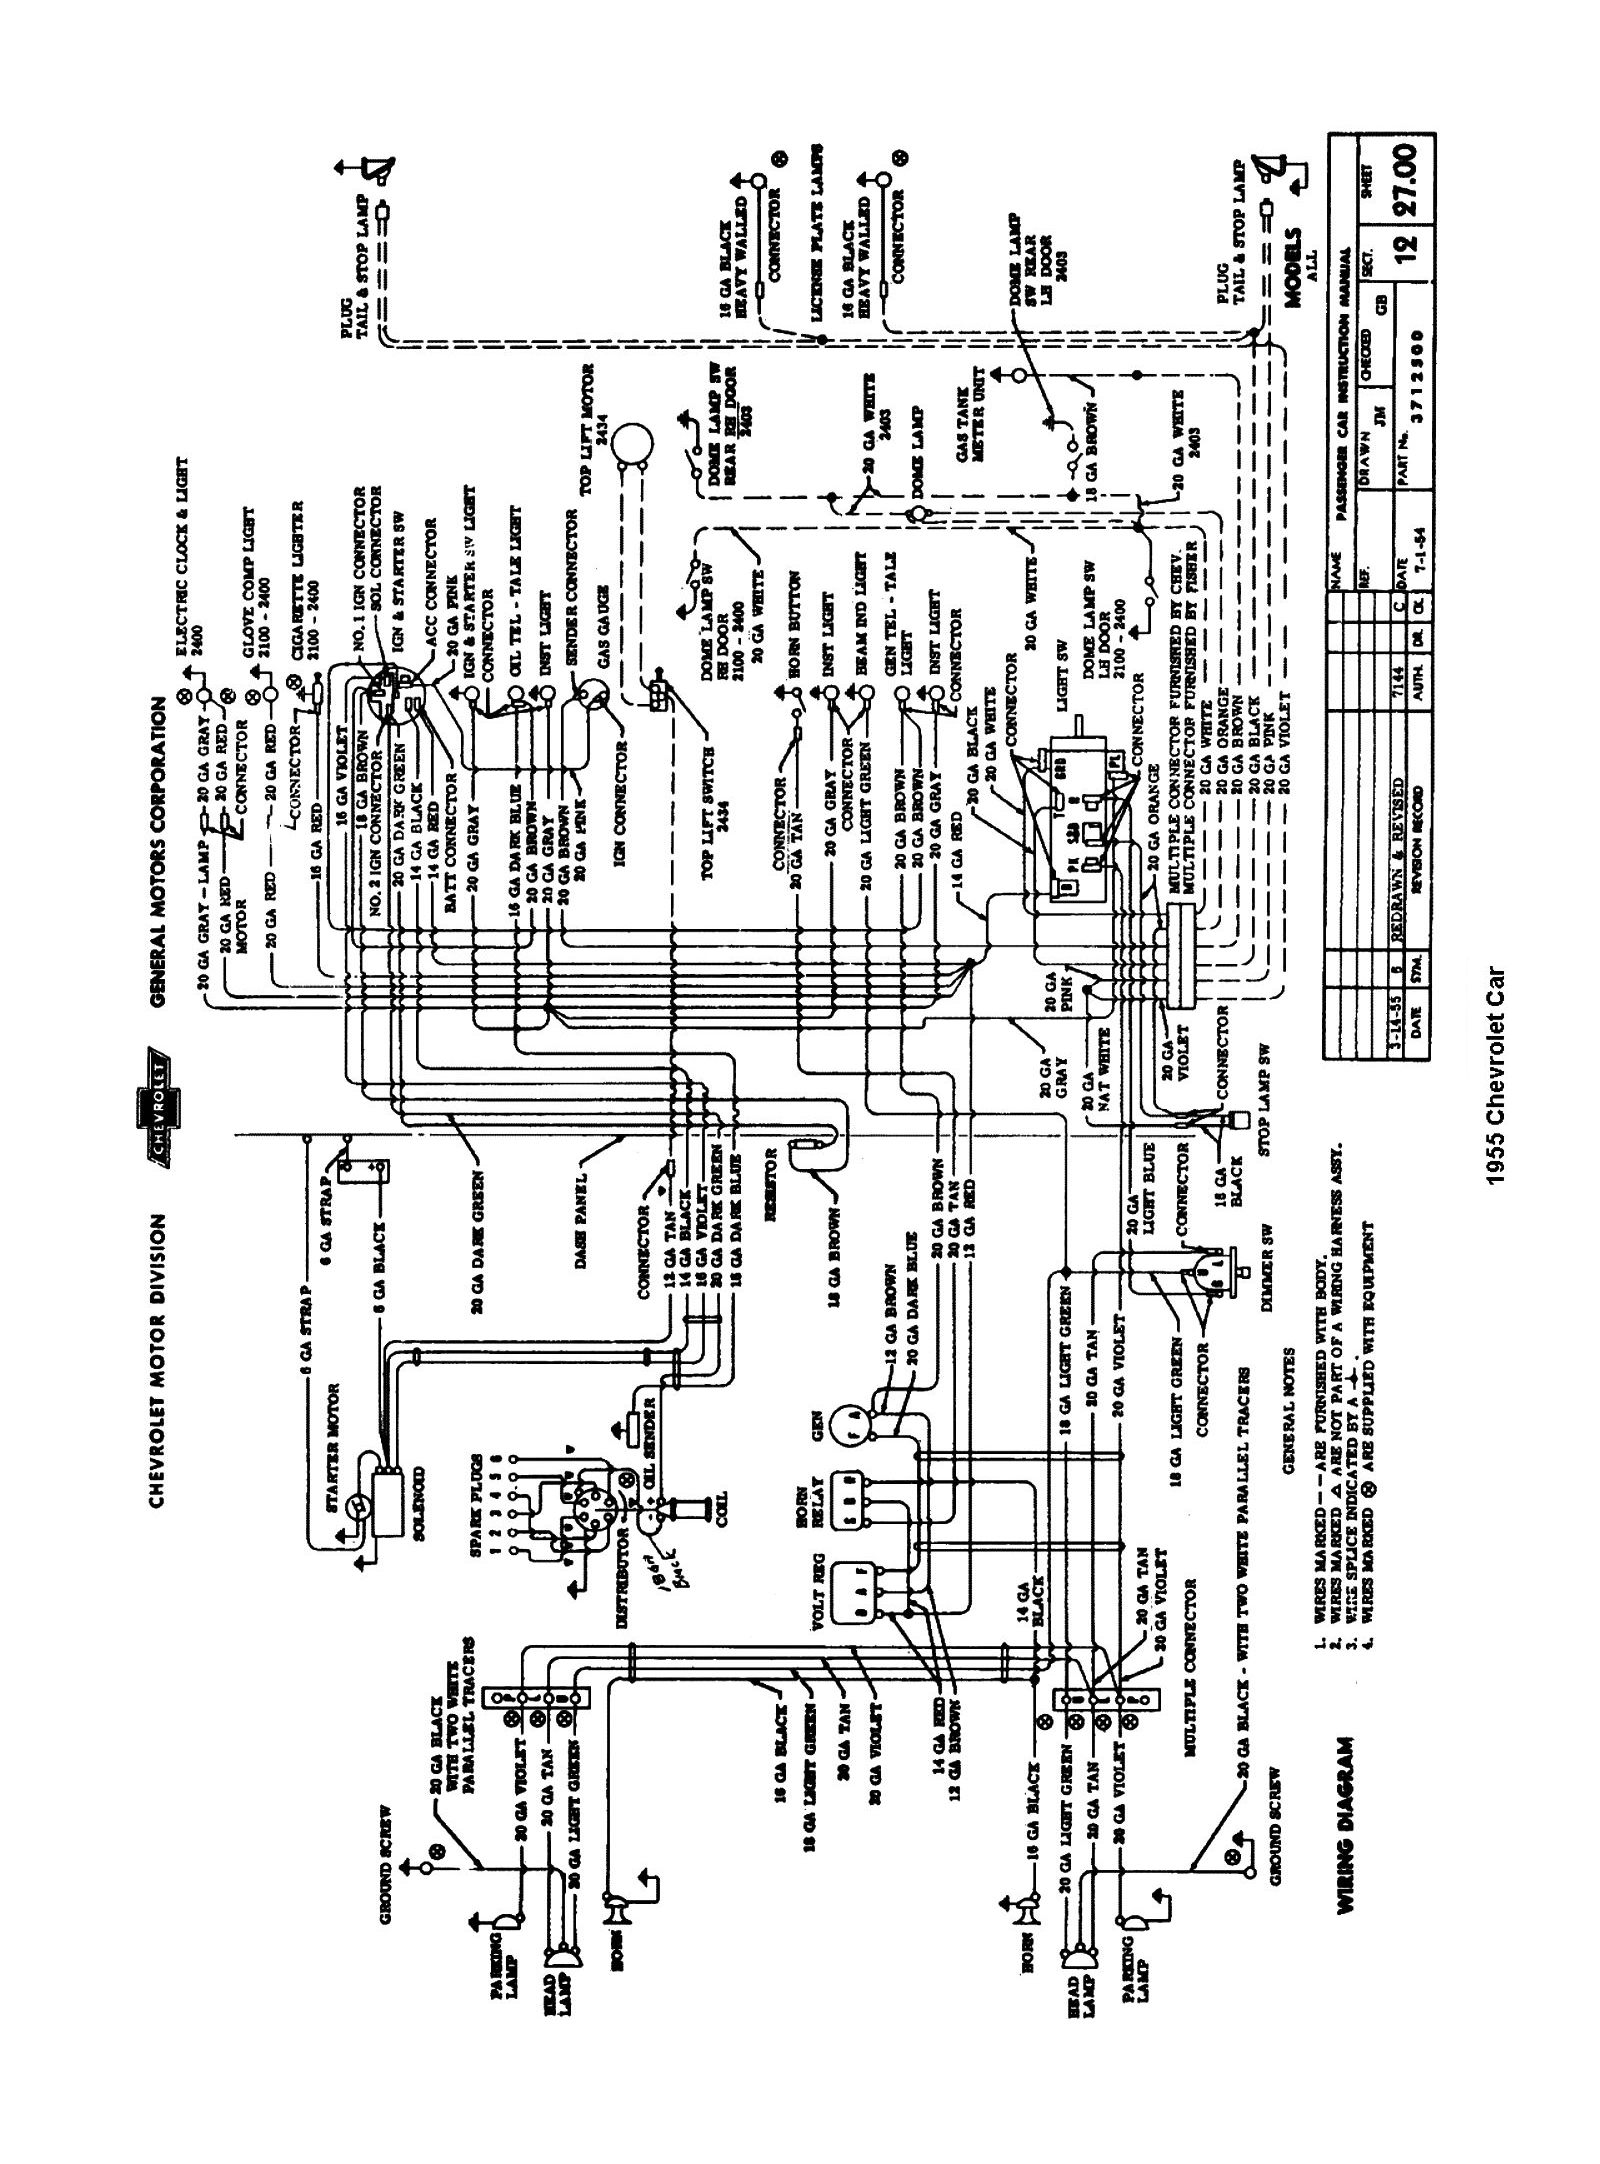 55car1 1955 plymouth wiring diagram 1955 wiring diagrams instruction 66 Chevy Headlight Switch Wiring Diagram at pacquiaovsvargaslive.co